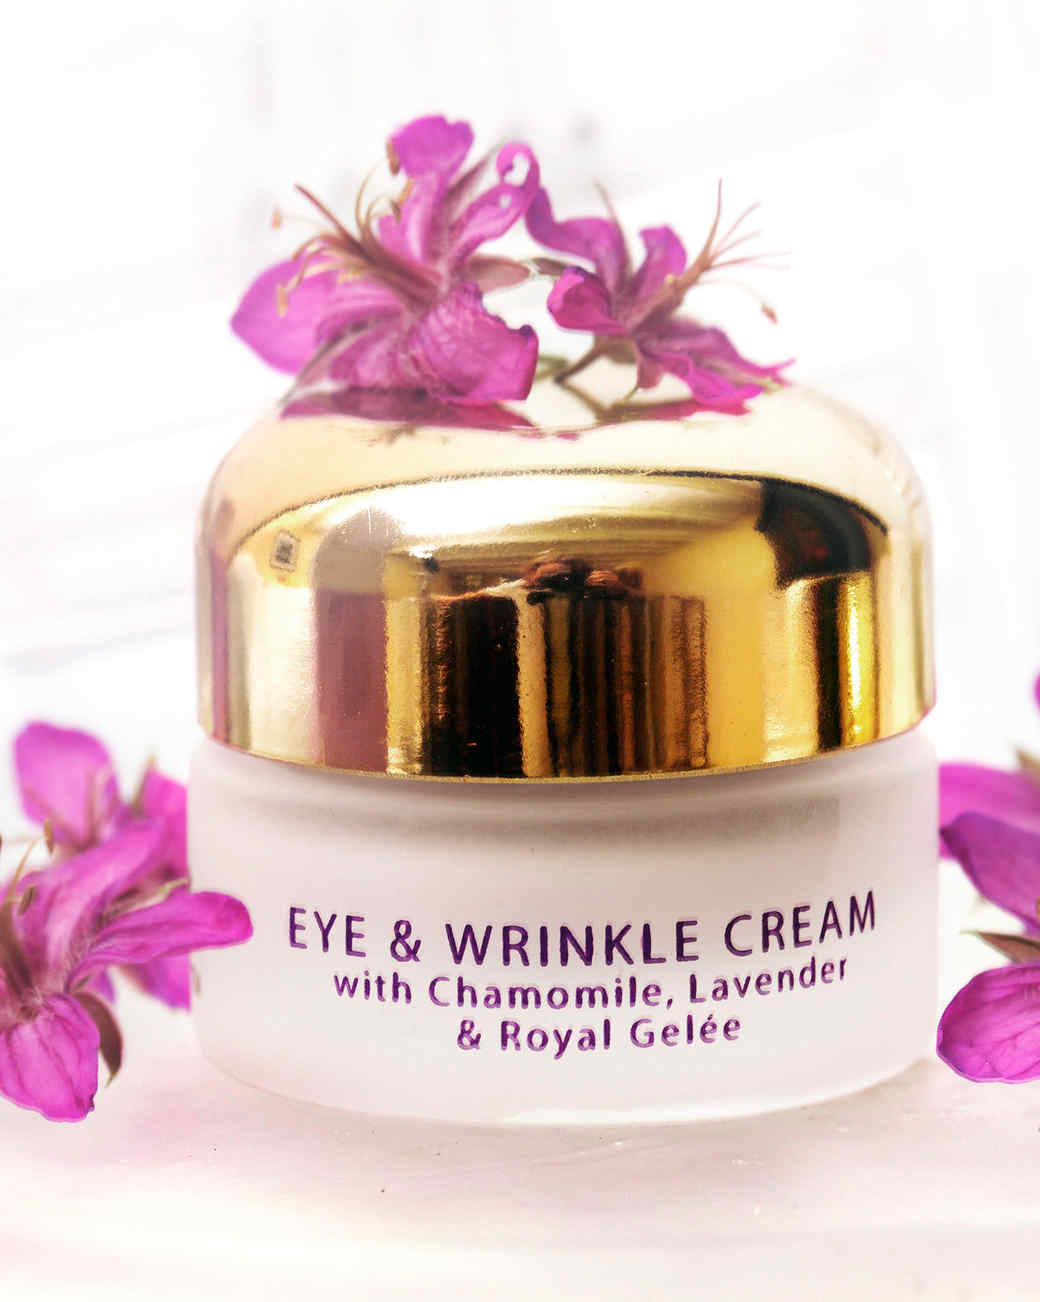 susan-ciminelli-eye-and-wrinkle-cream-0915.jpg